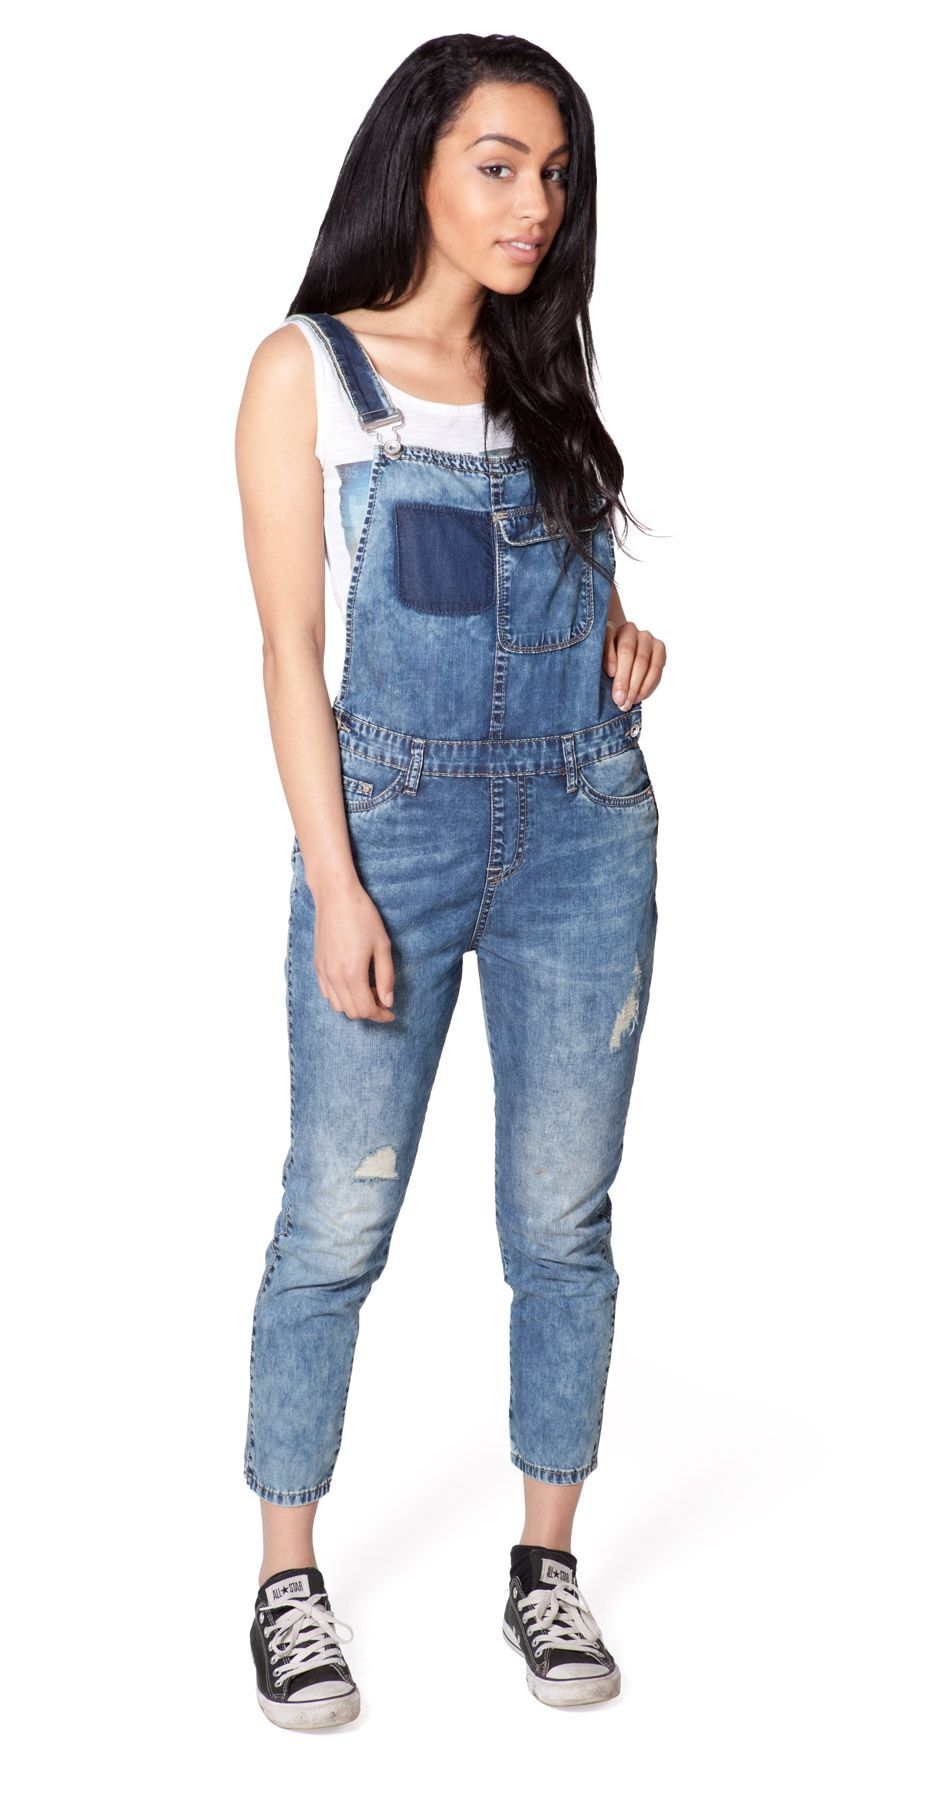 bddad81f39 Distressed denim dungarees from Dungarees Online - available UK size 6 -  14.  overalls